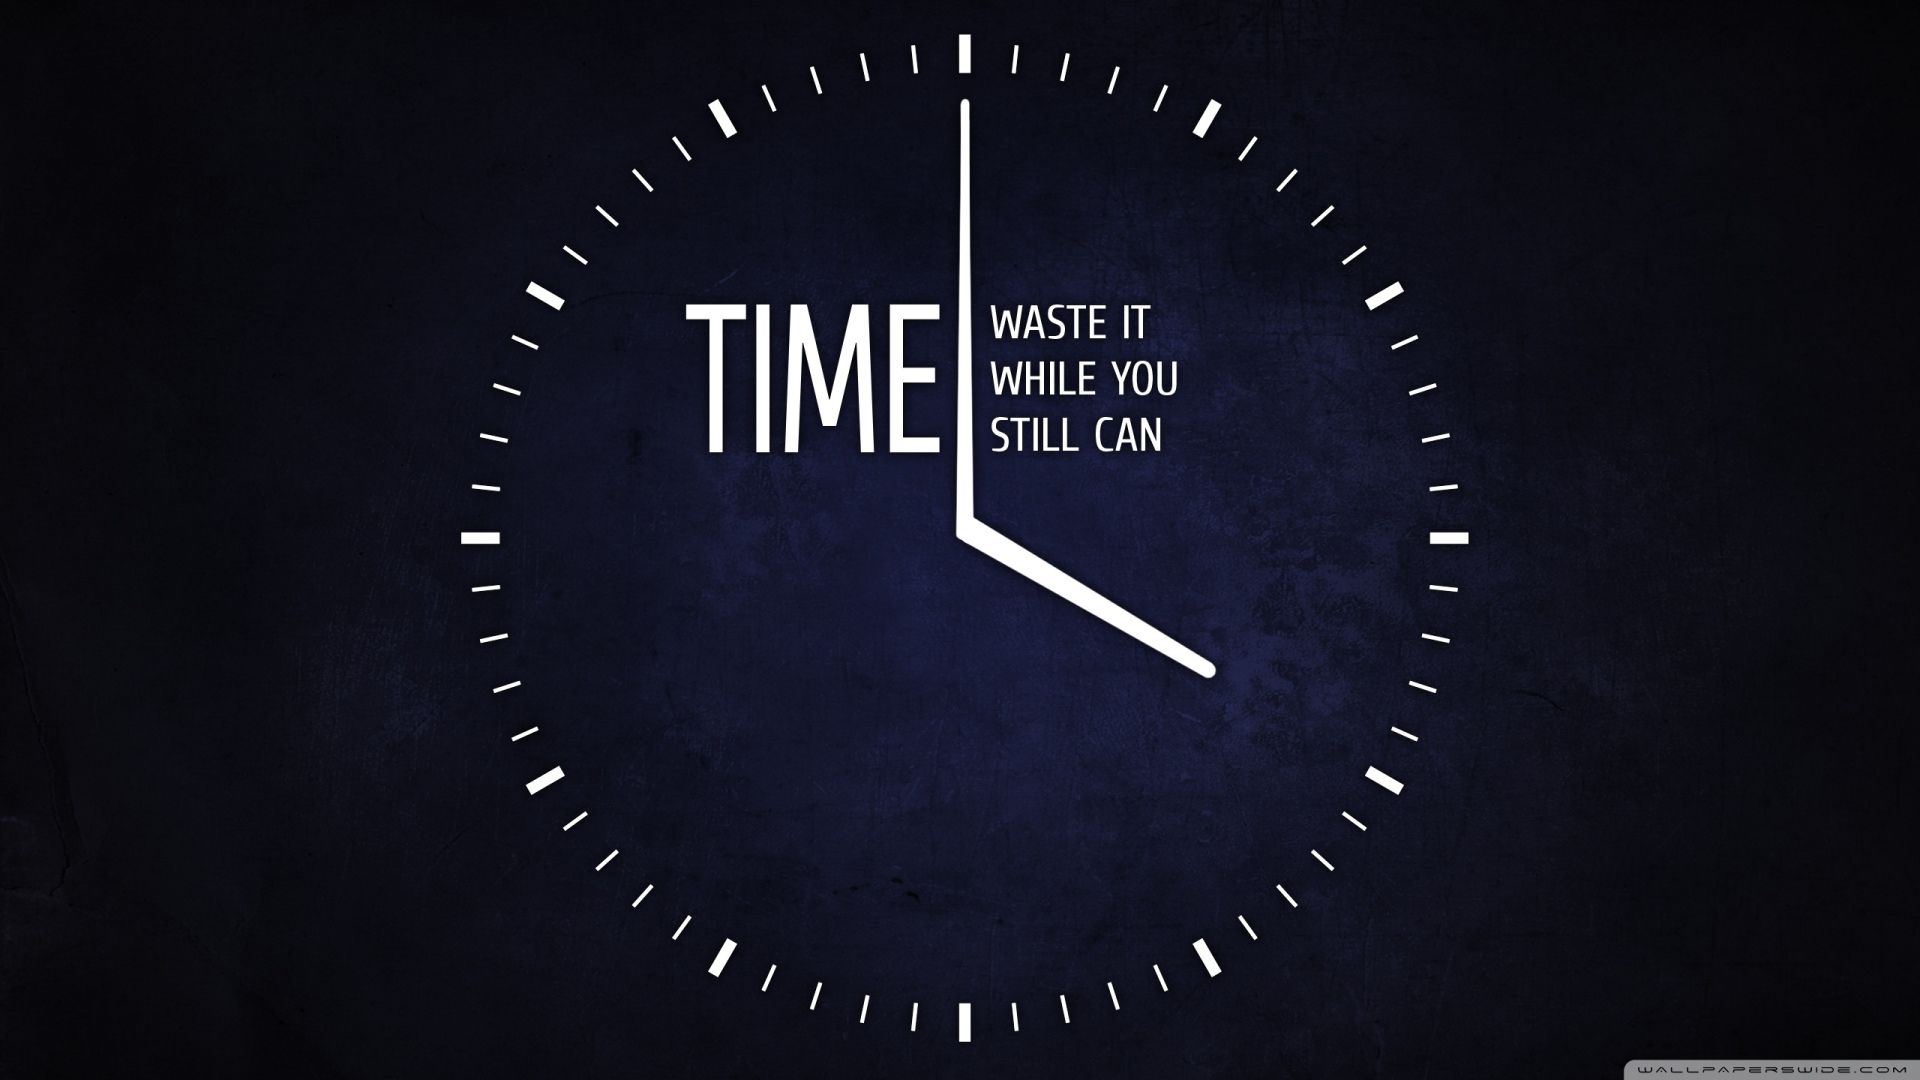 Misc Motivational Wallpaper Motivational Wallpaper Clock Wallpaper Time Quotes